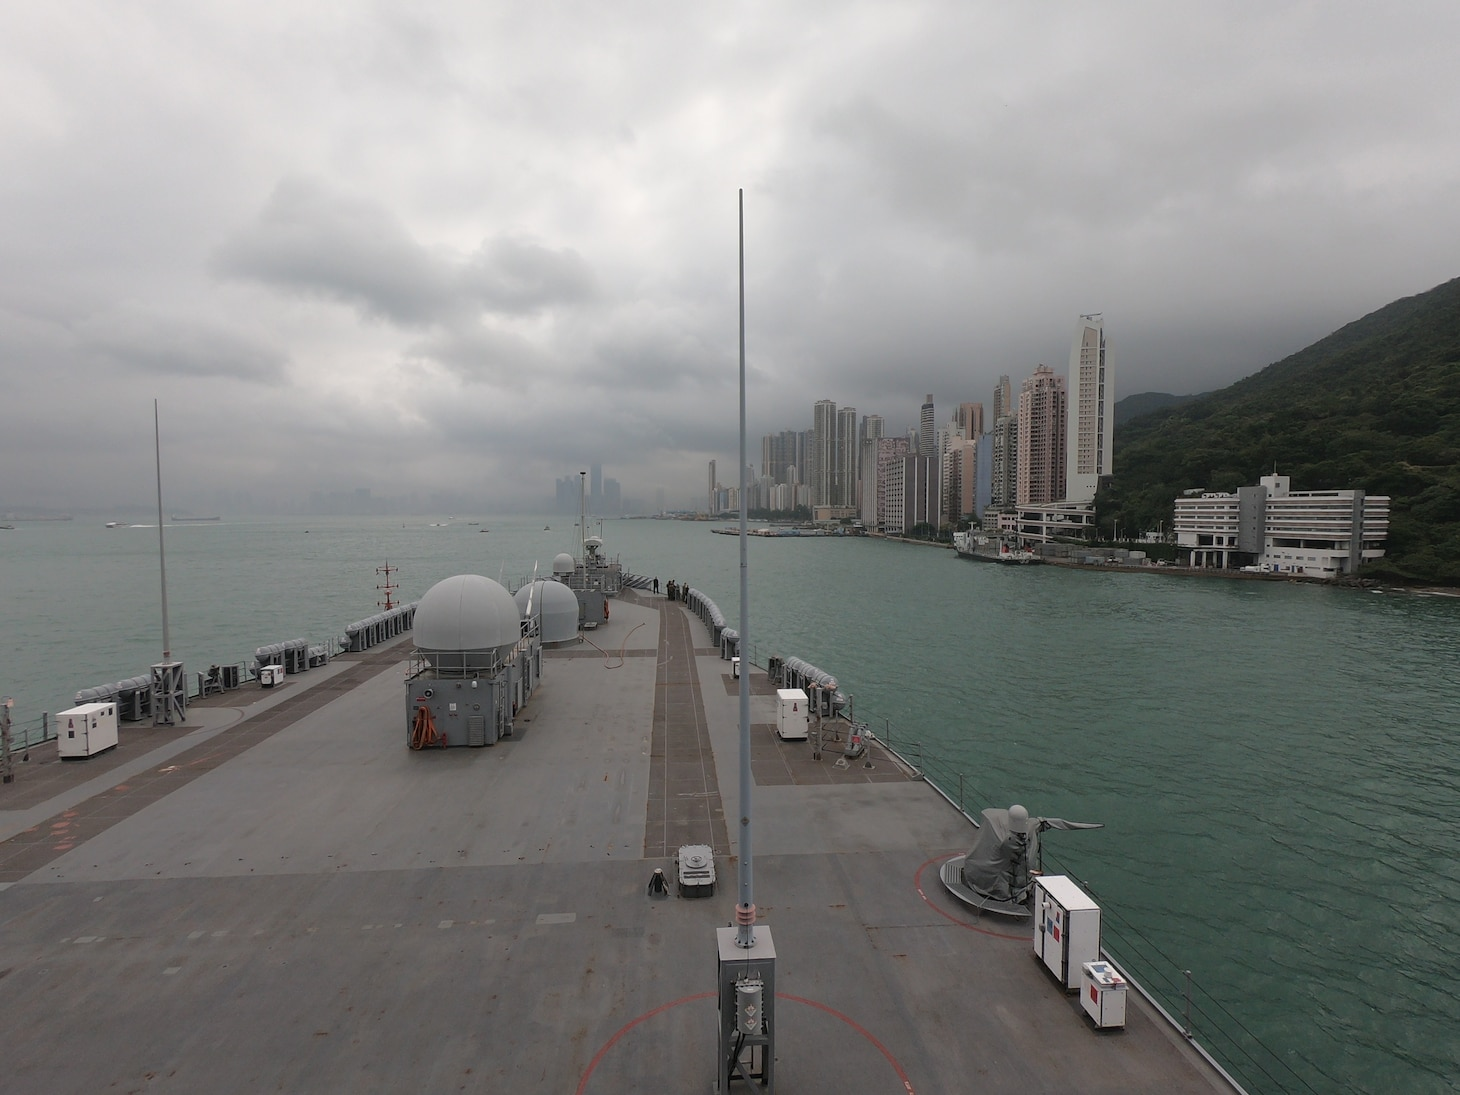 U.S. 7th Fleet Flagship USS Blue Ridge (LCC 19) arrives for a port visit in Hong Kong. Blue Ridge is the oldest operational ship in the Navy and, as U.S. 7th Fleet command ship, is operating in support of security and stability in the Indo-Pacific Region.